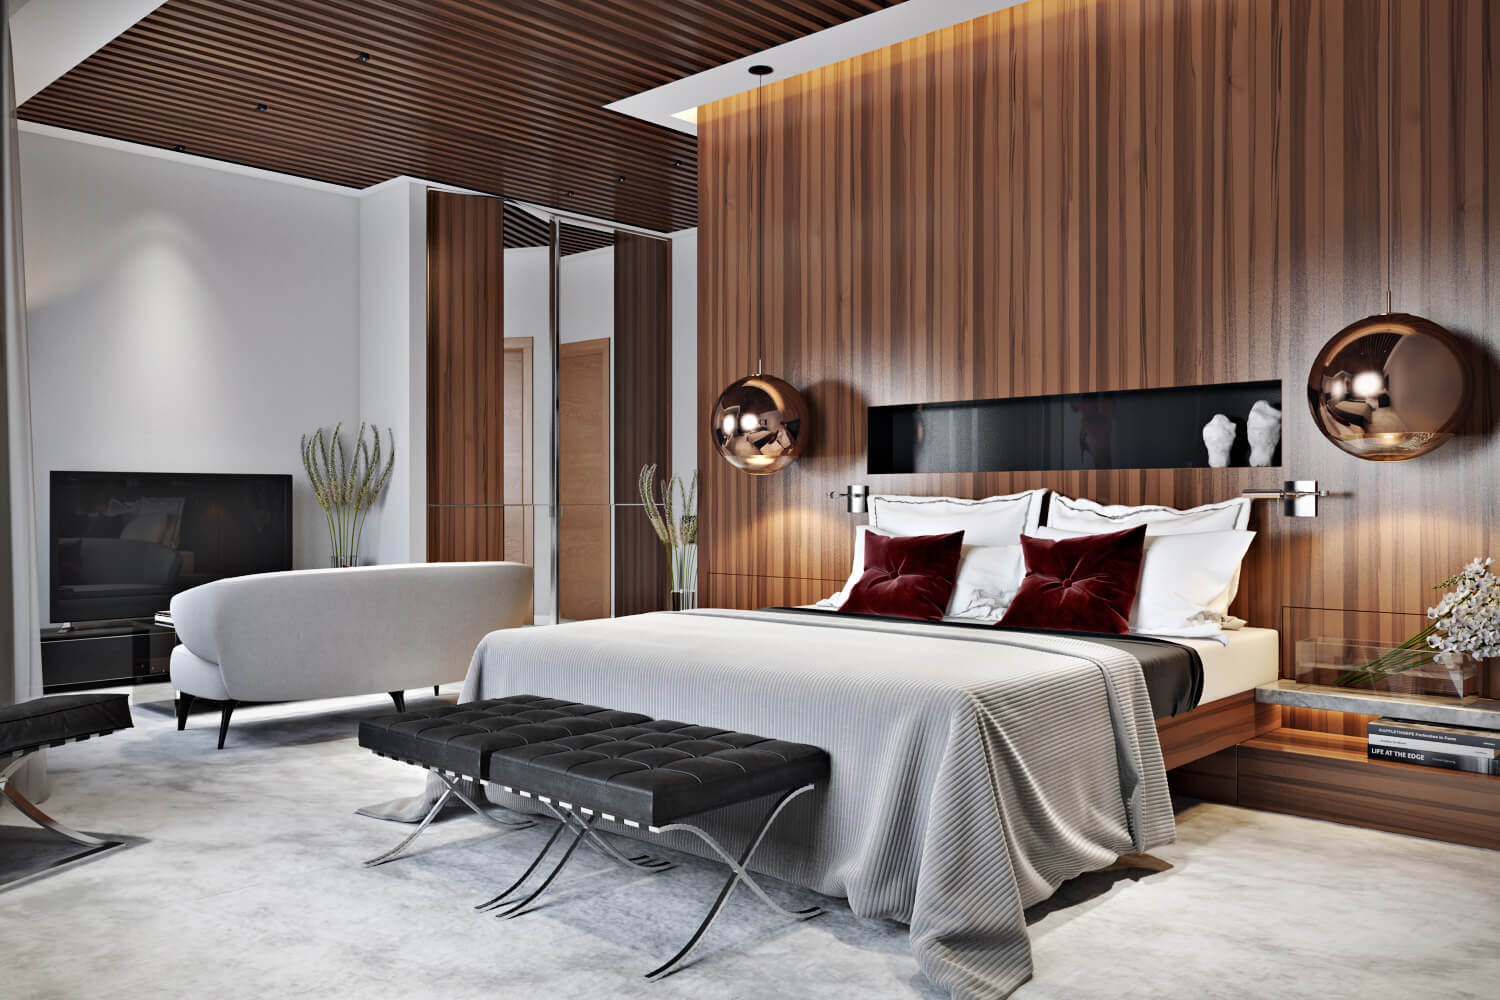 Rendering Interior Design For Bedroom In New York By Archicgi